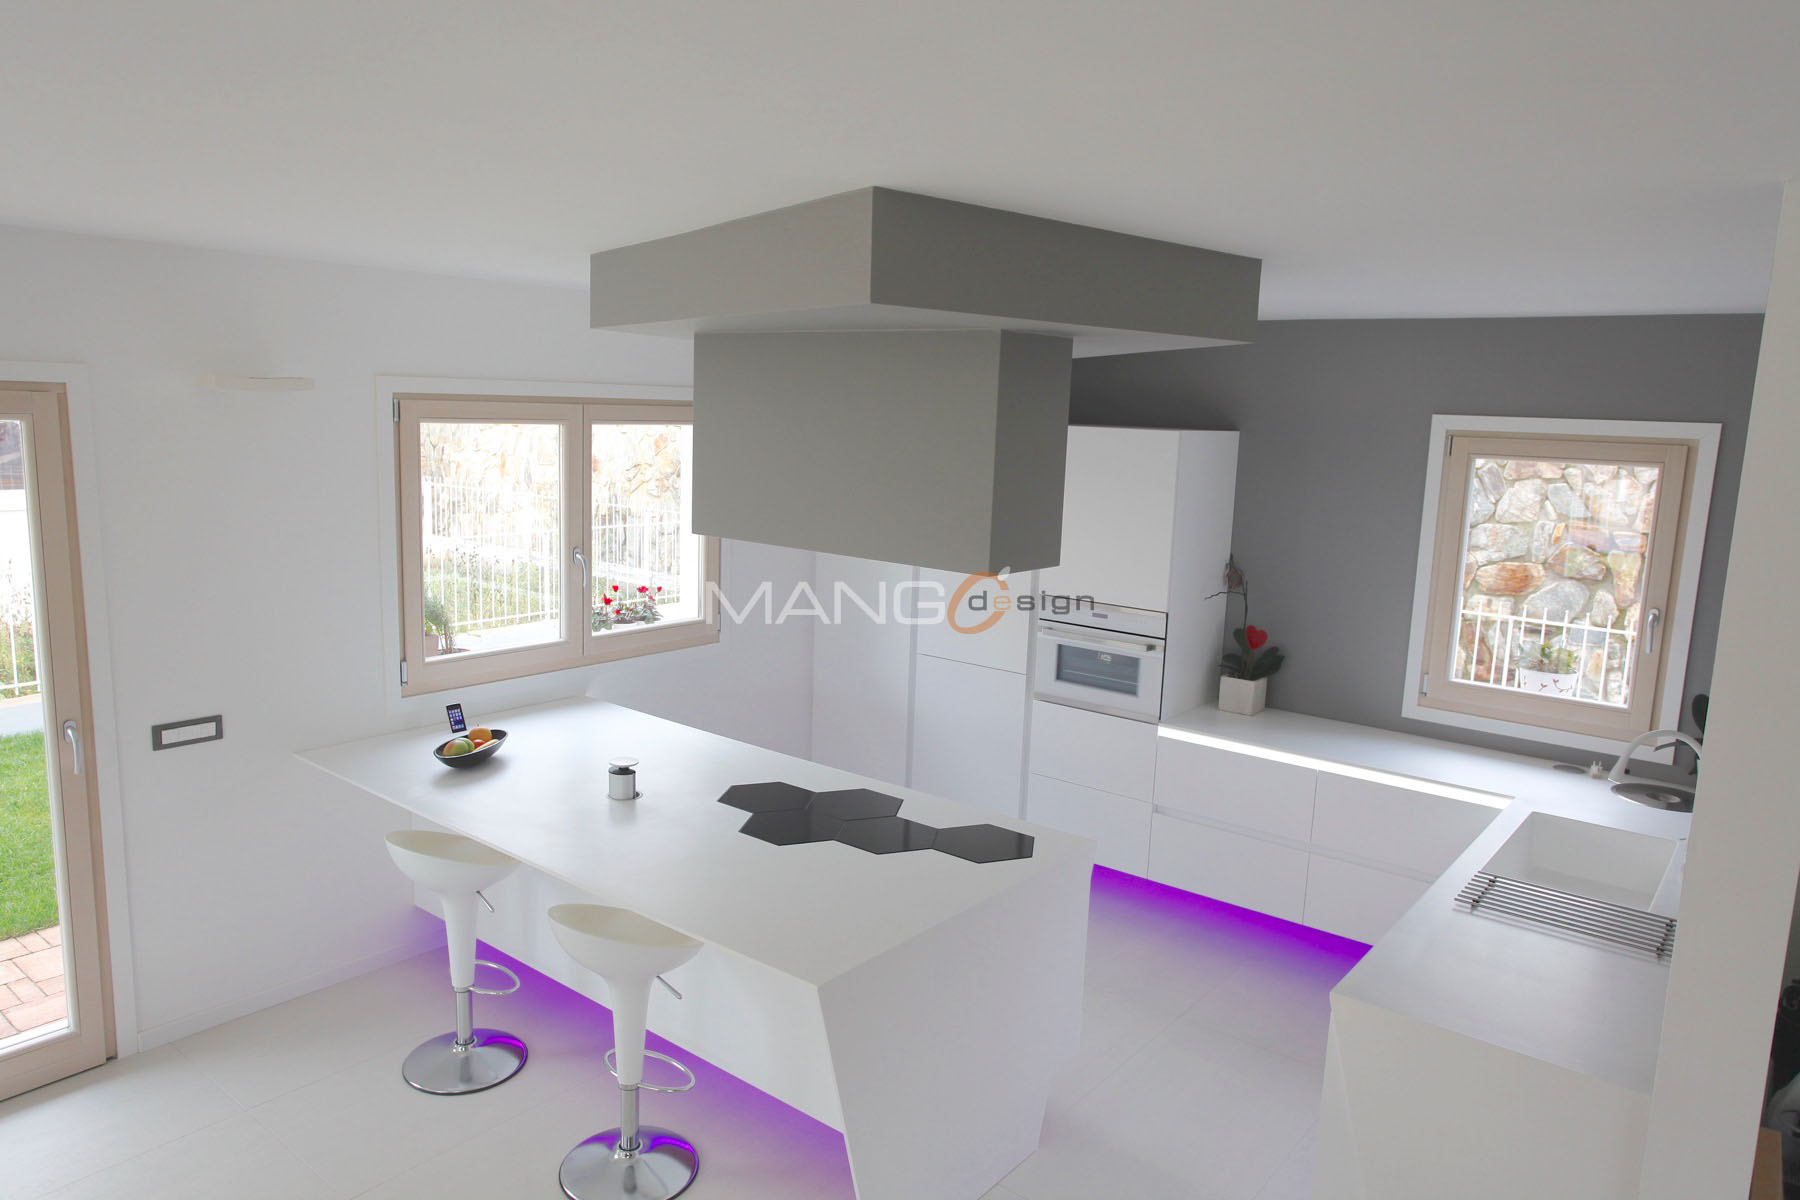 Cucina in corian con rifiniture color grigio e led colorati ...